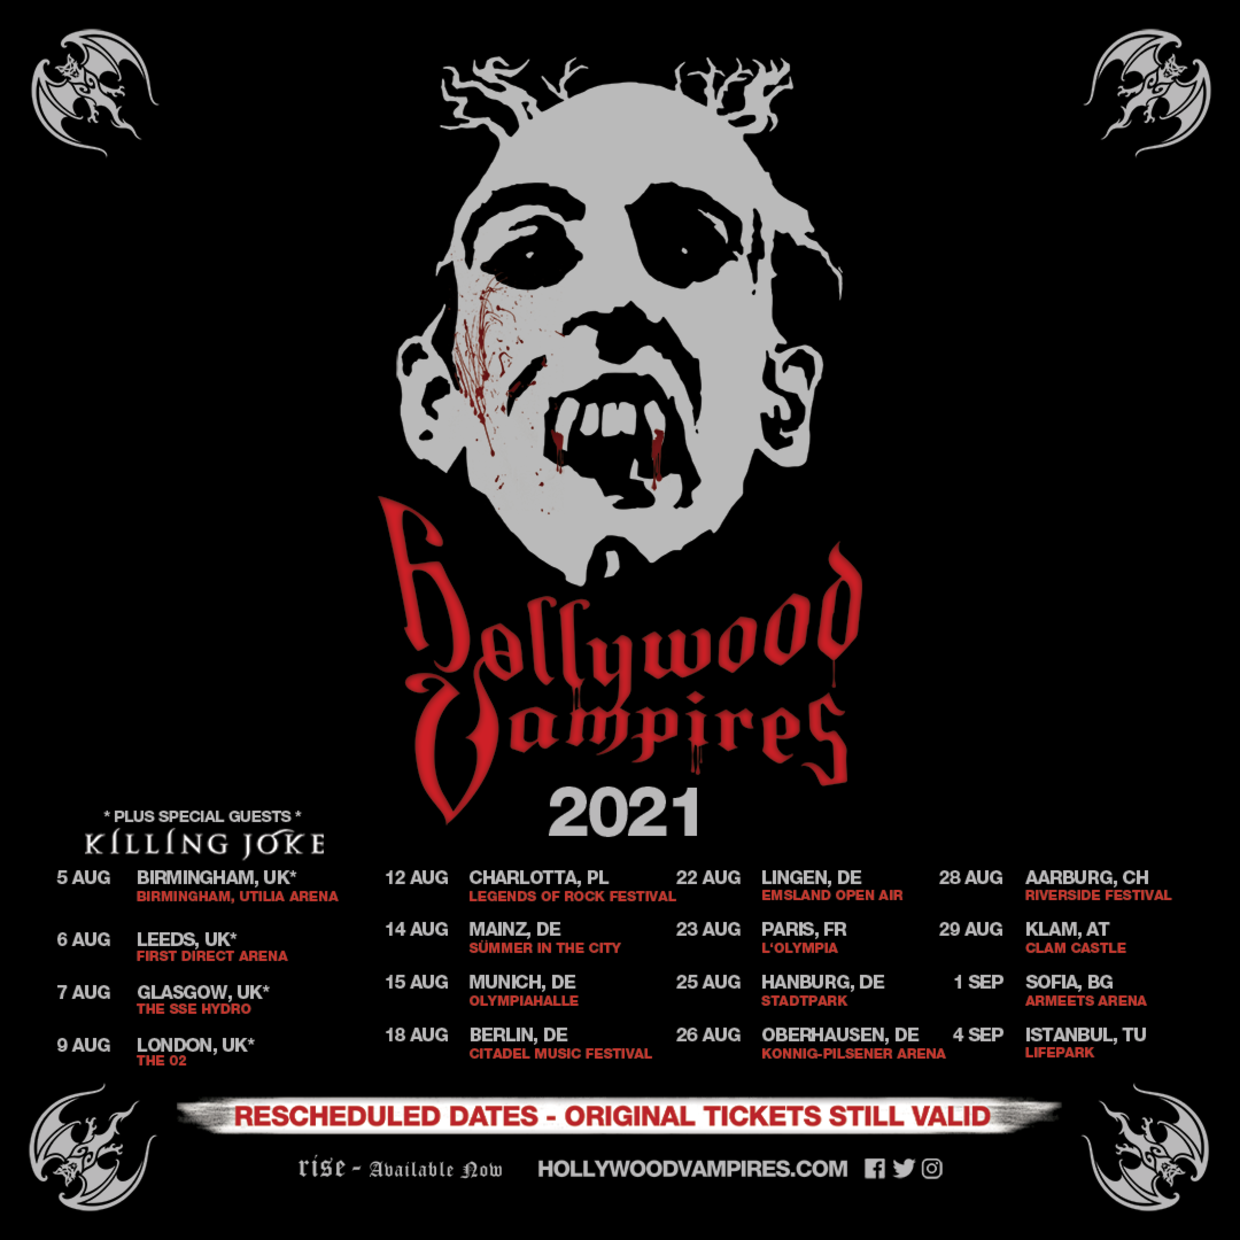 Hollywood Vampires 2021